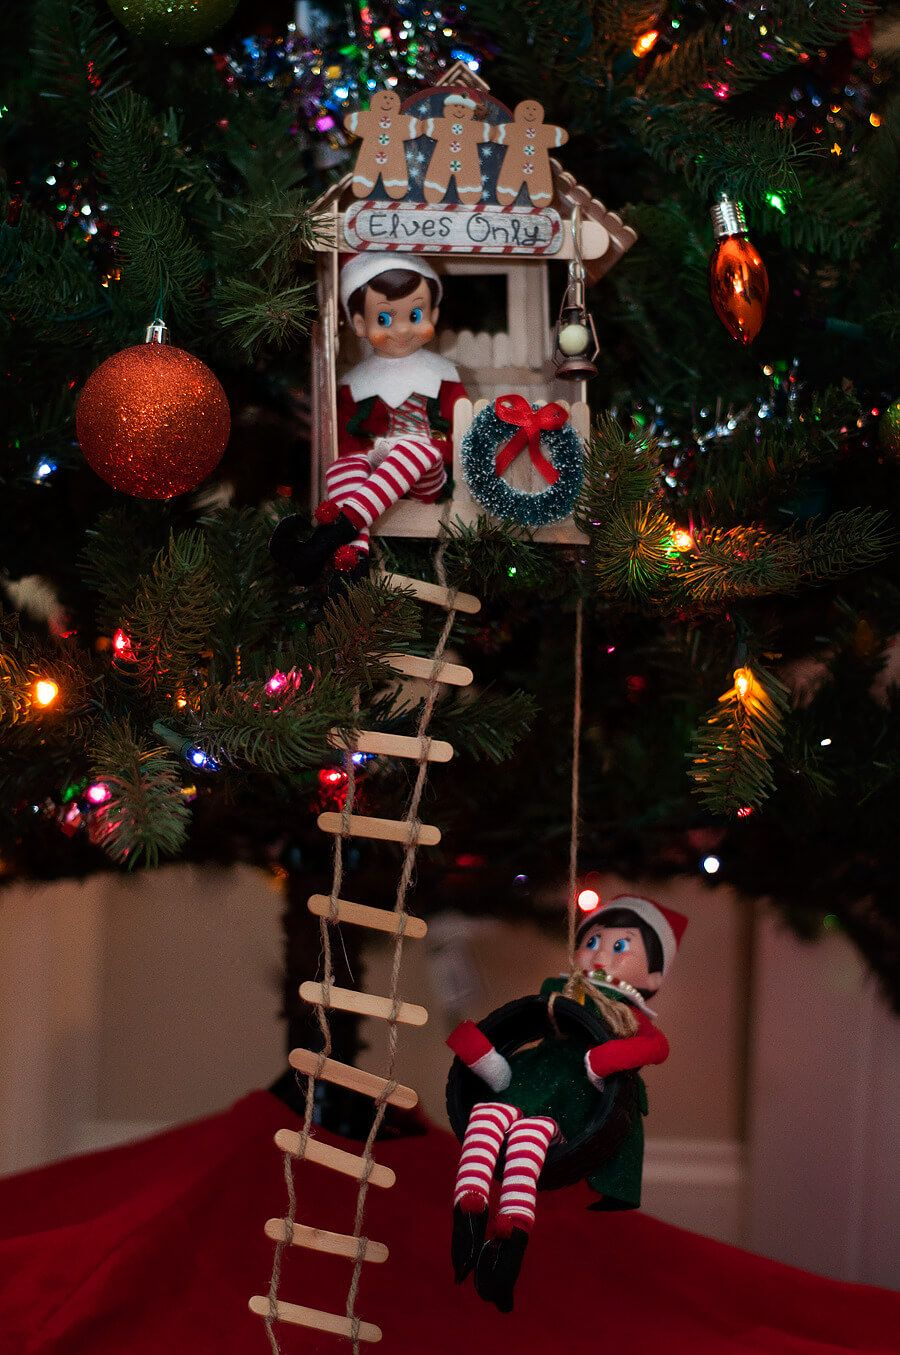 50 Insanely Easy Elf on the Shelf Ideas + Ultimate Elf on the Shelf Hack